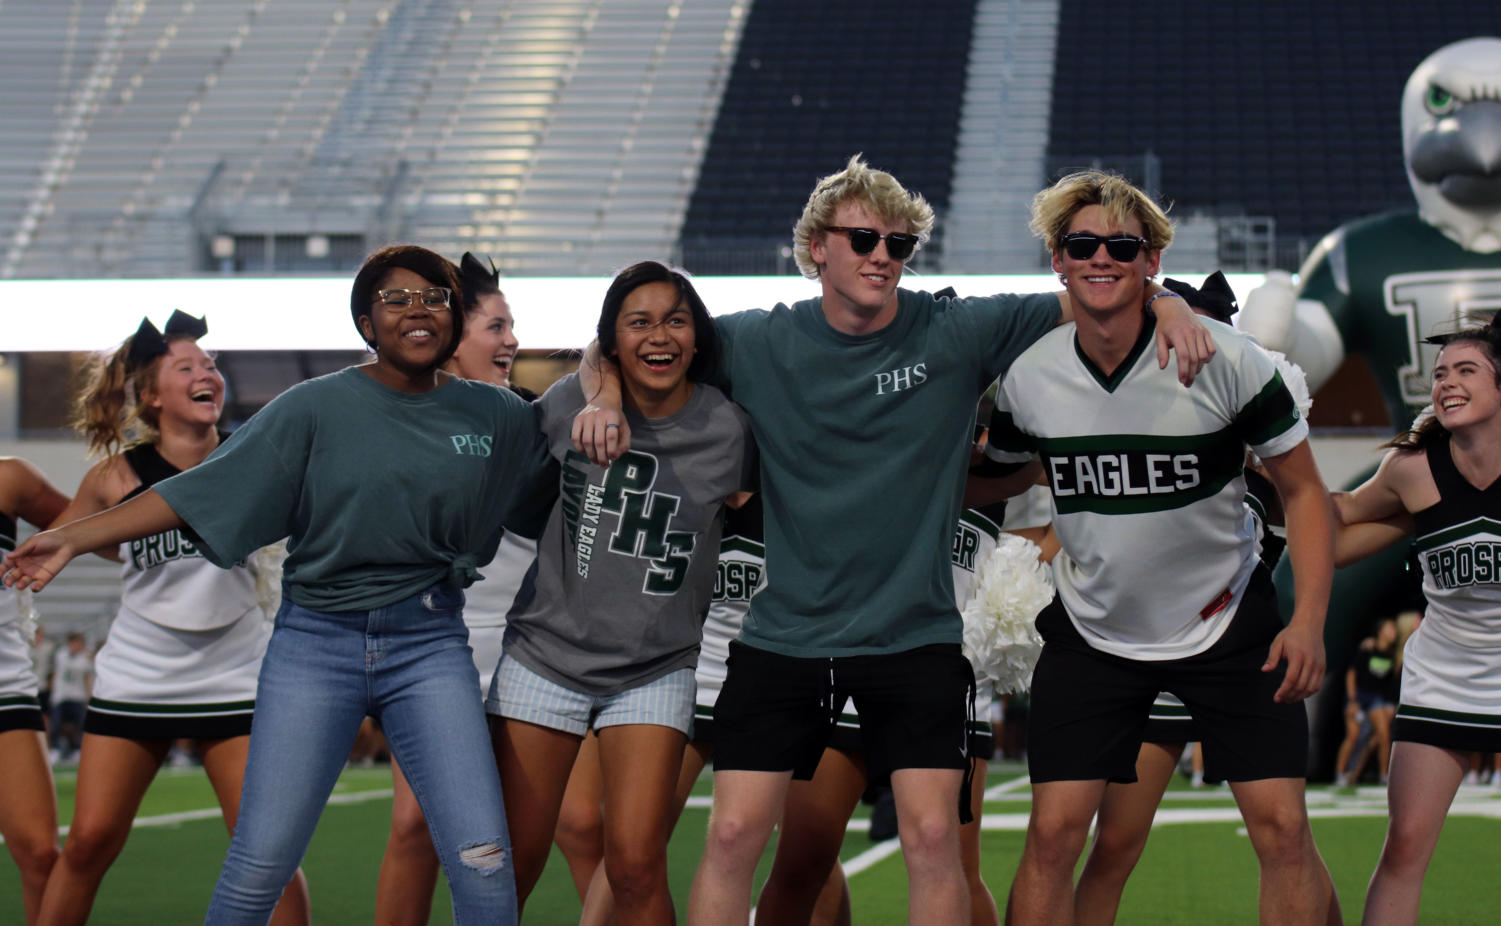 Senior+spirit+leaders+Ifunanya+Nwaoba%2C+Alyssa+Gonzalez%2C+Sam+Covert+and+Collin+McDonald+perform+%22Hooked+on+a+Feeling%22+and+announce+it+as+the+senior+song.+After+all+the+athletes+were+introduced%2C+they+pumped+up+the+crowd+with+the+%27I+Believe+that+We+Can+Win%27+chant.+The+seniors+will+continue+to+boost+spirits+at+future+games+and+rallies.++